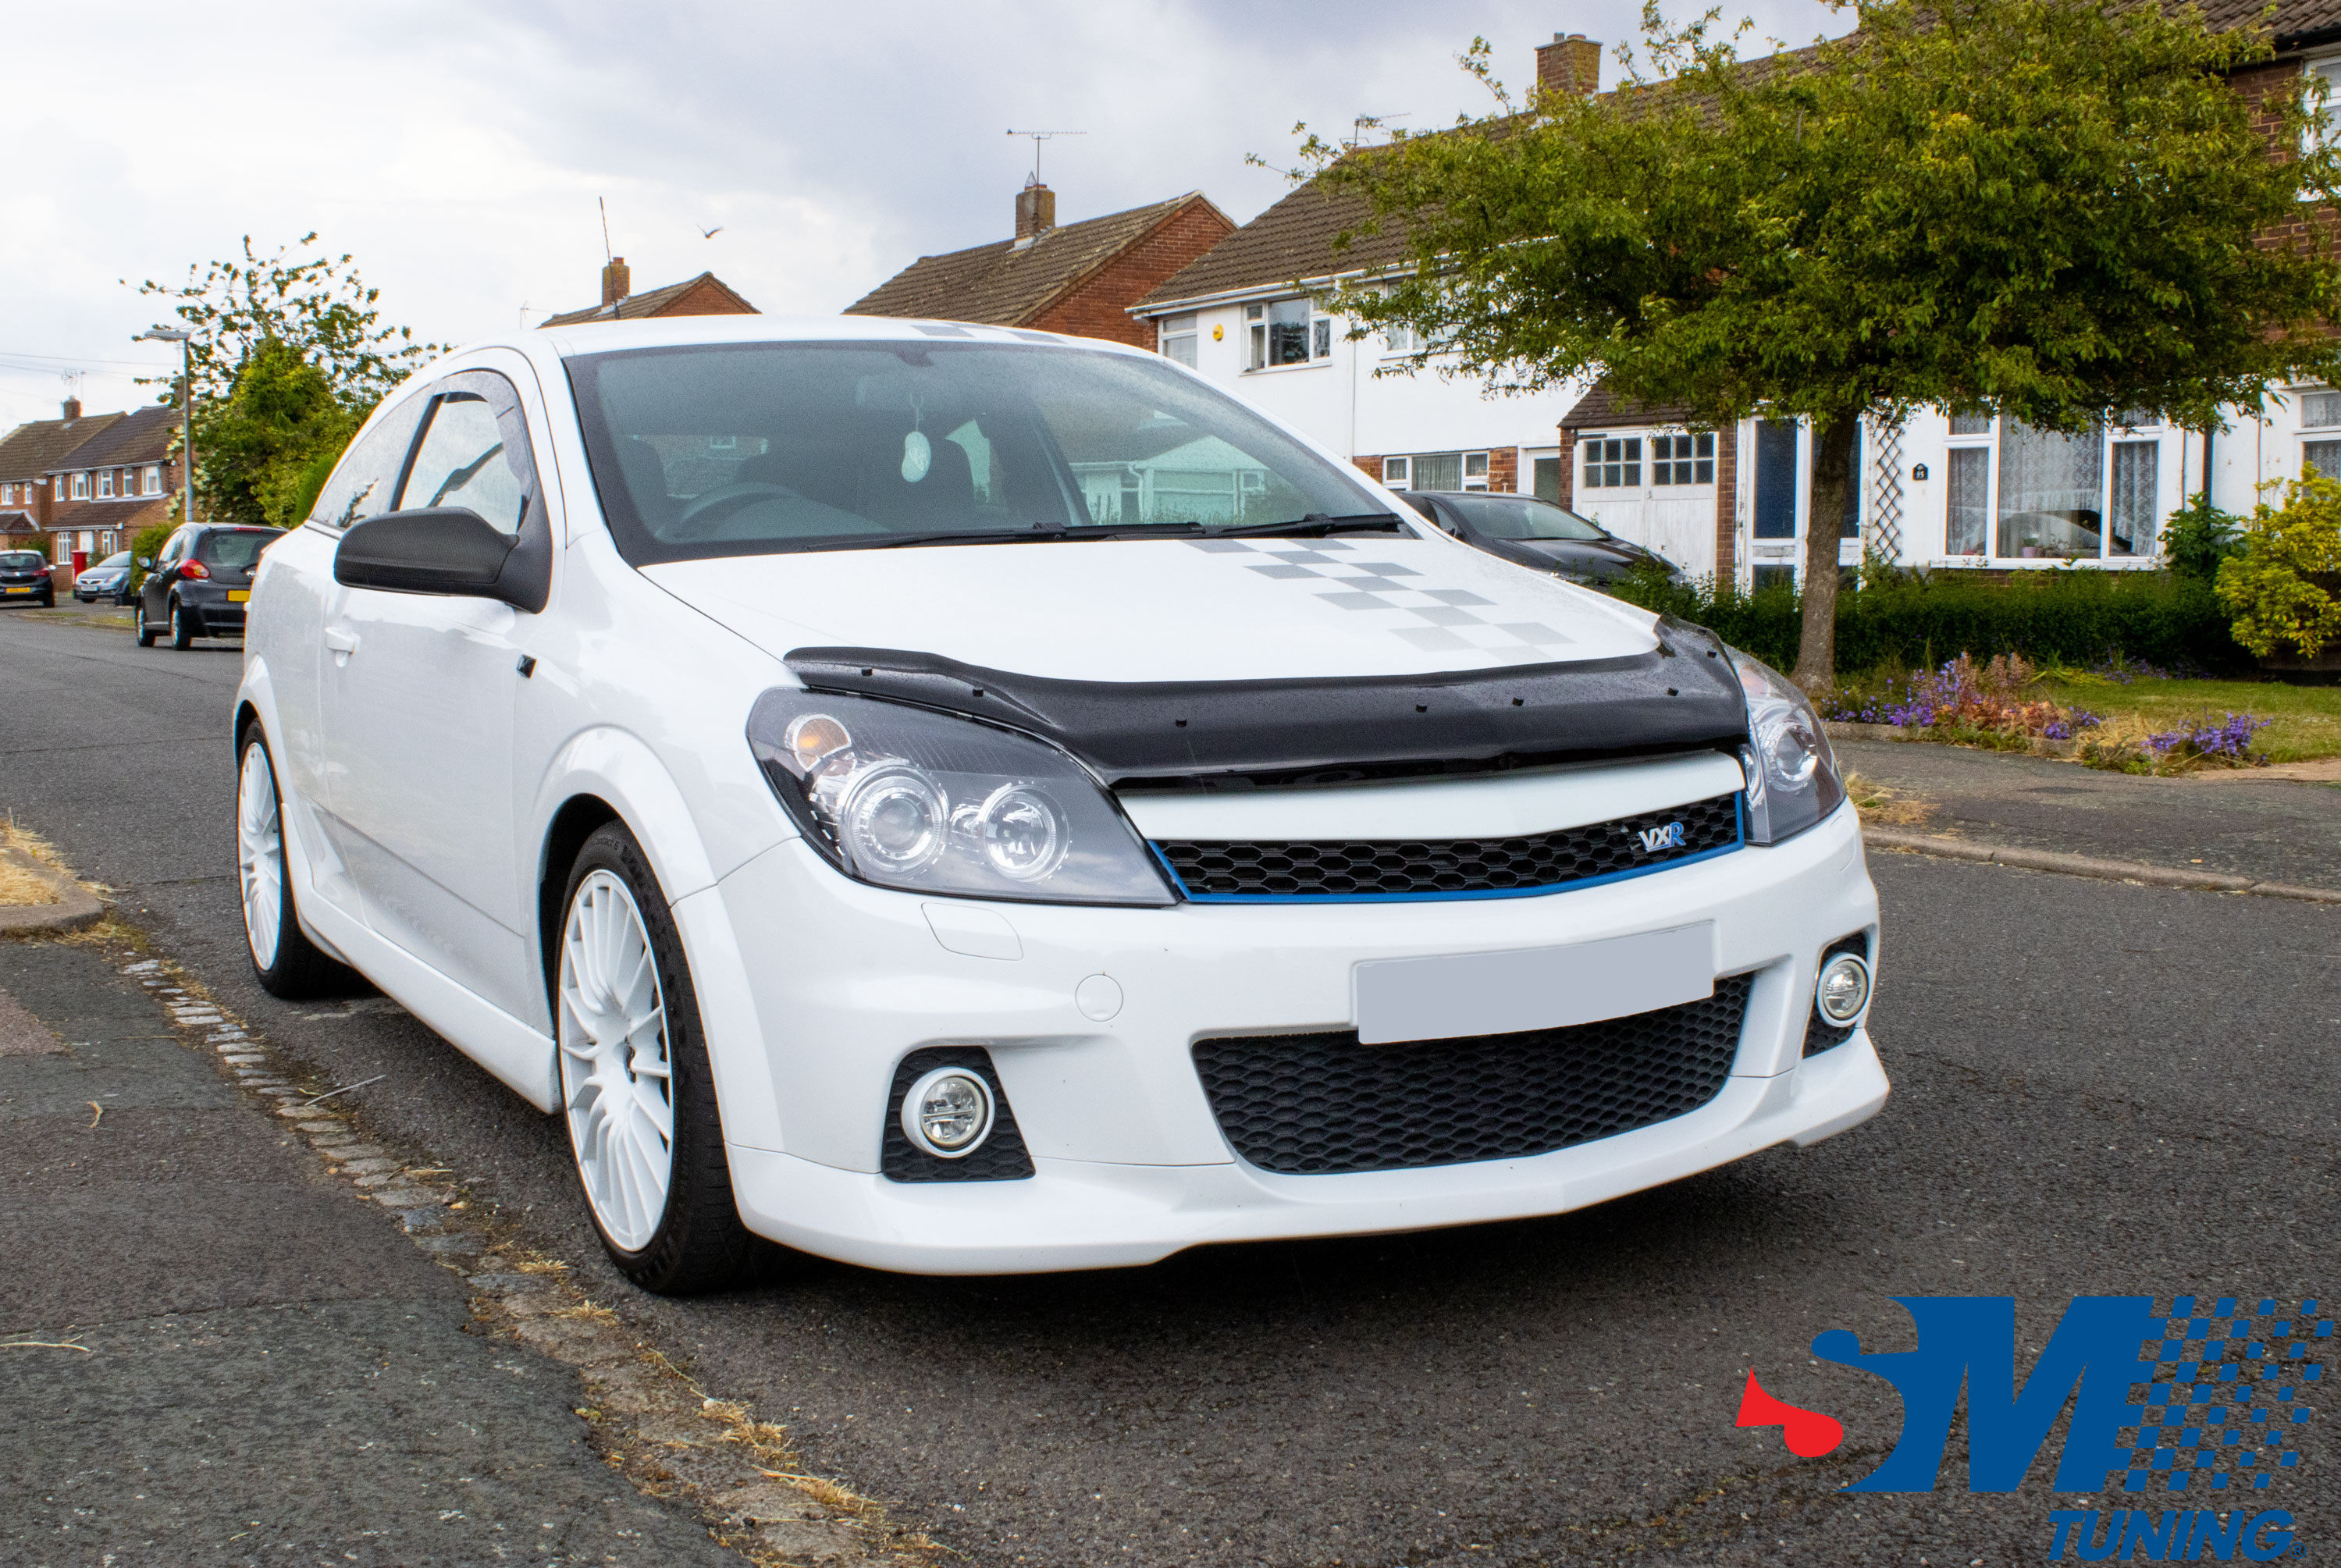 Vauxhall Astra VXR tuned in Luton, Bedfordshire